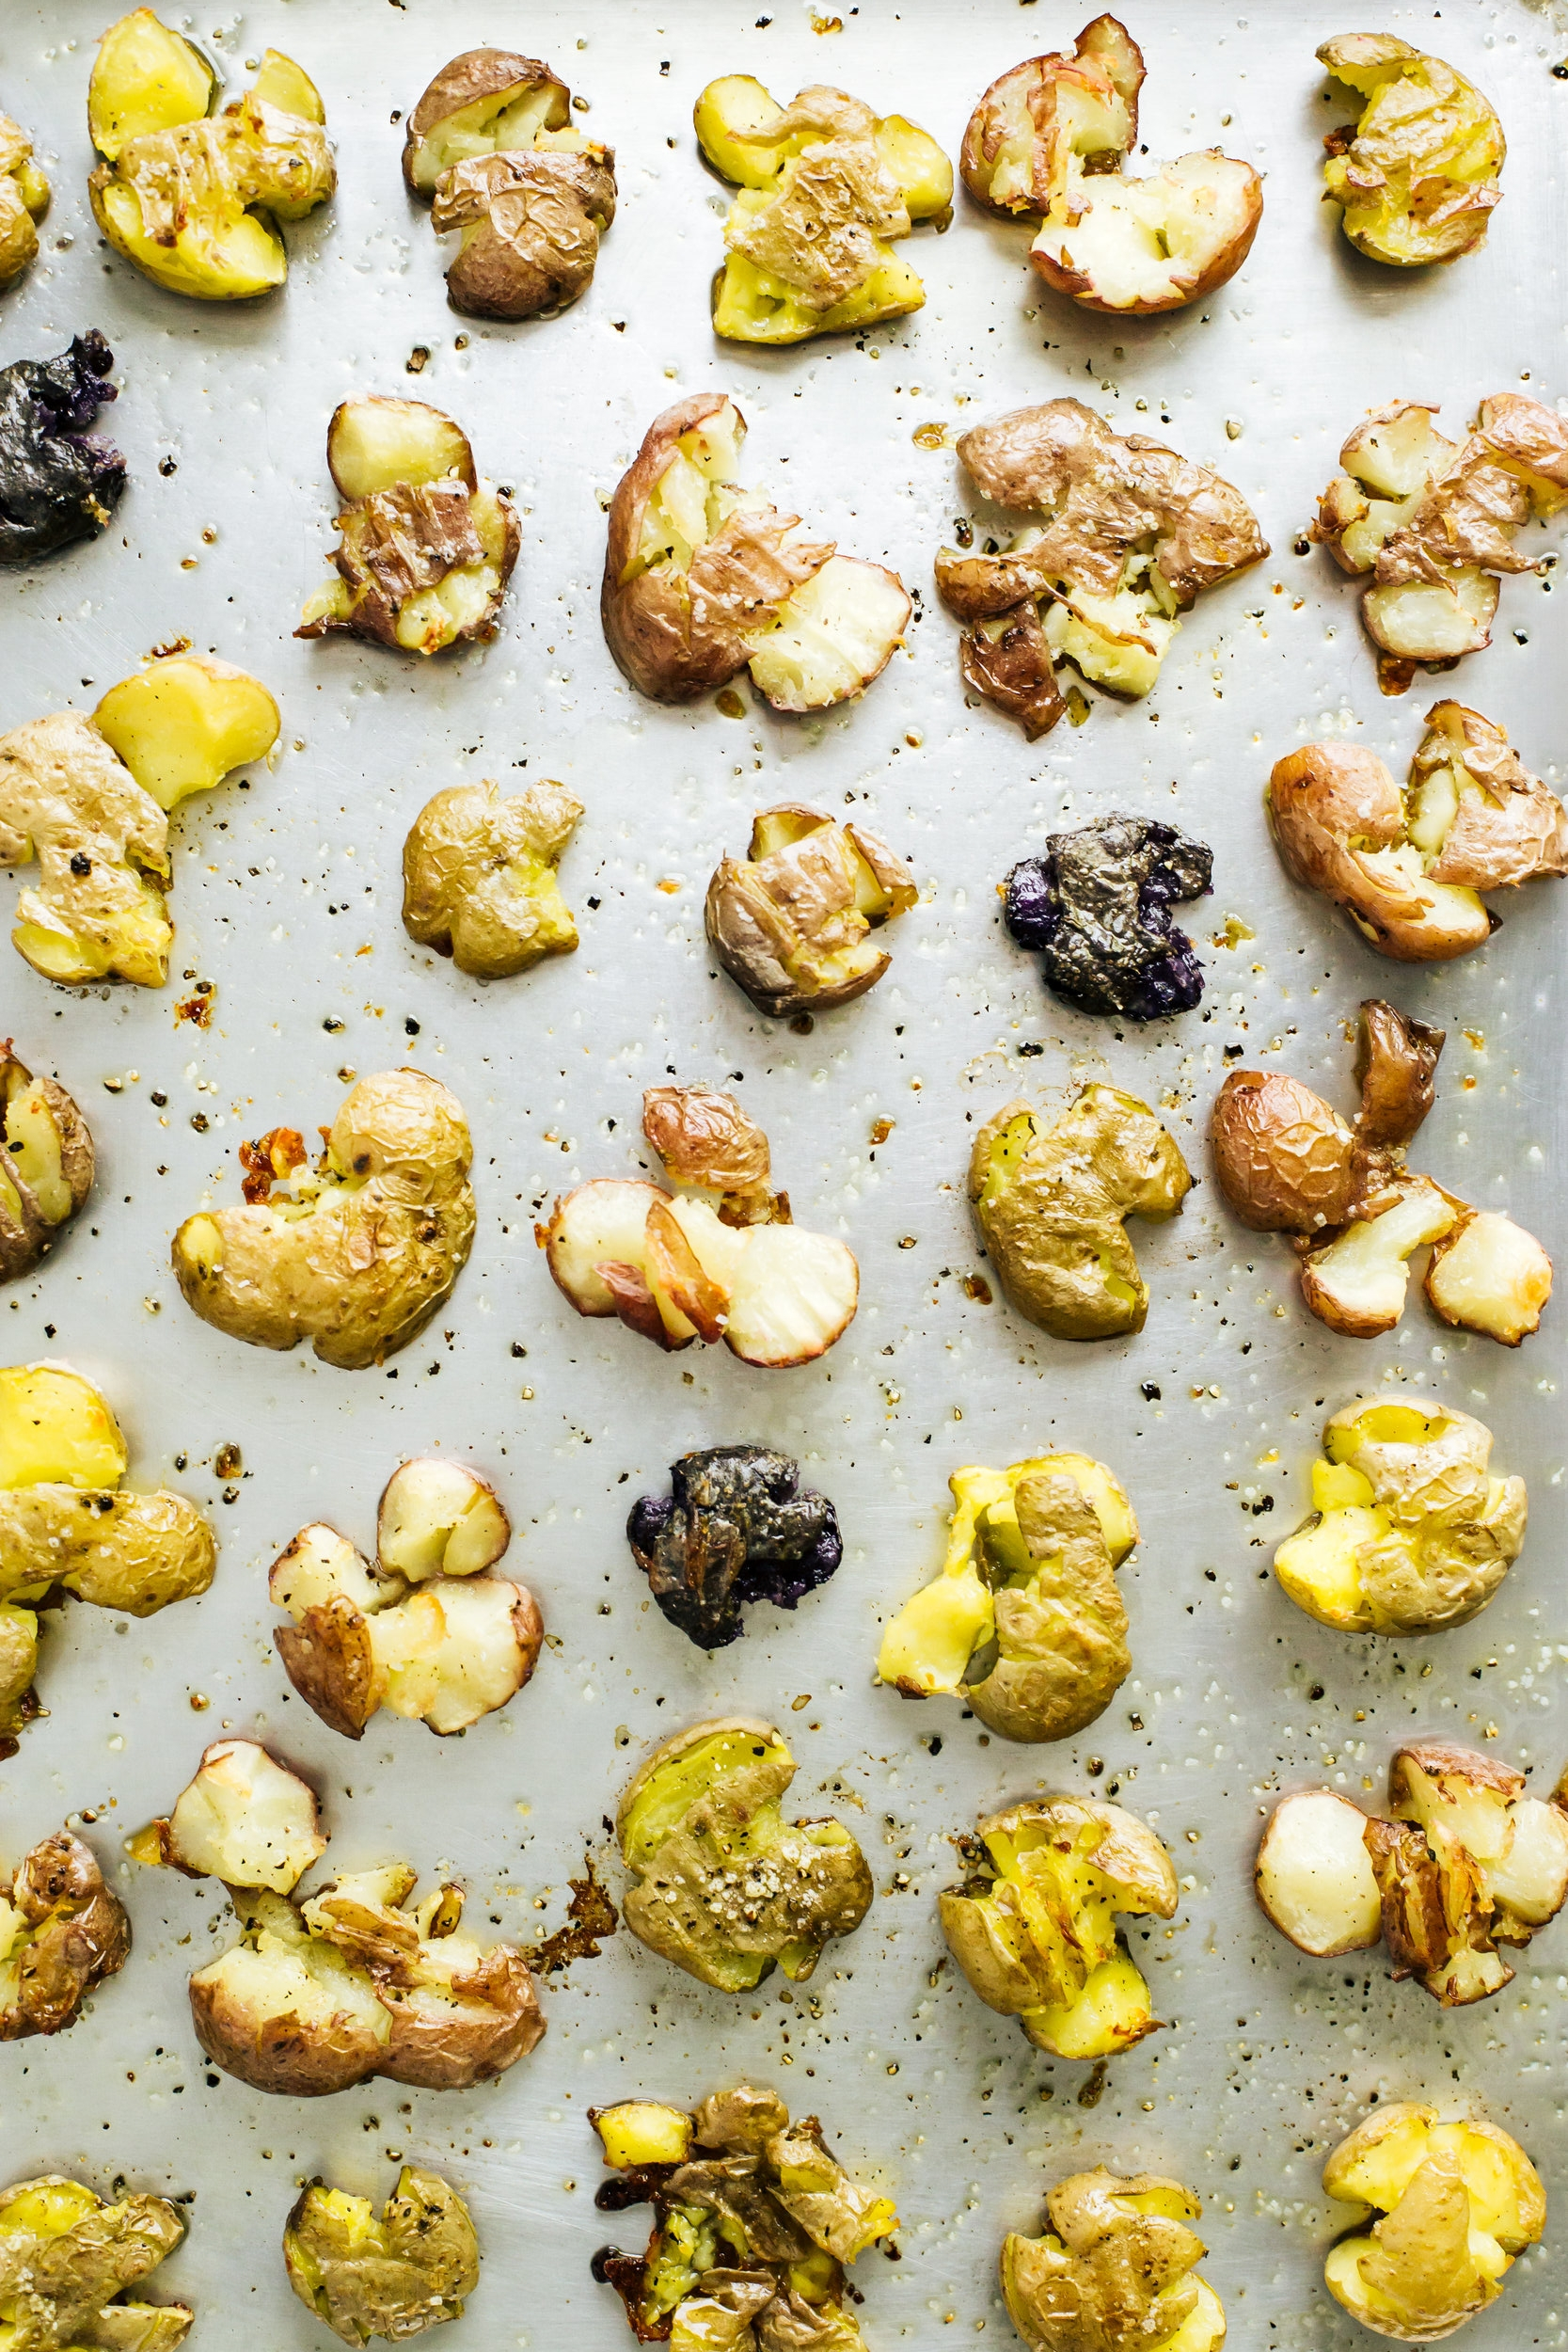 smashed_potatoes_walnut_romesco-3.jpg